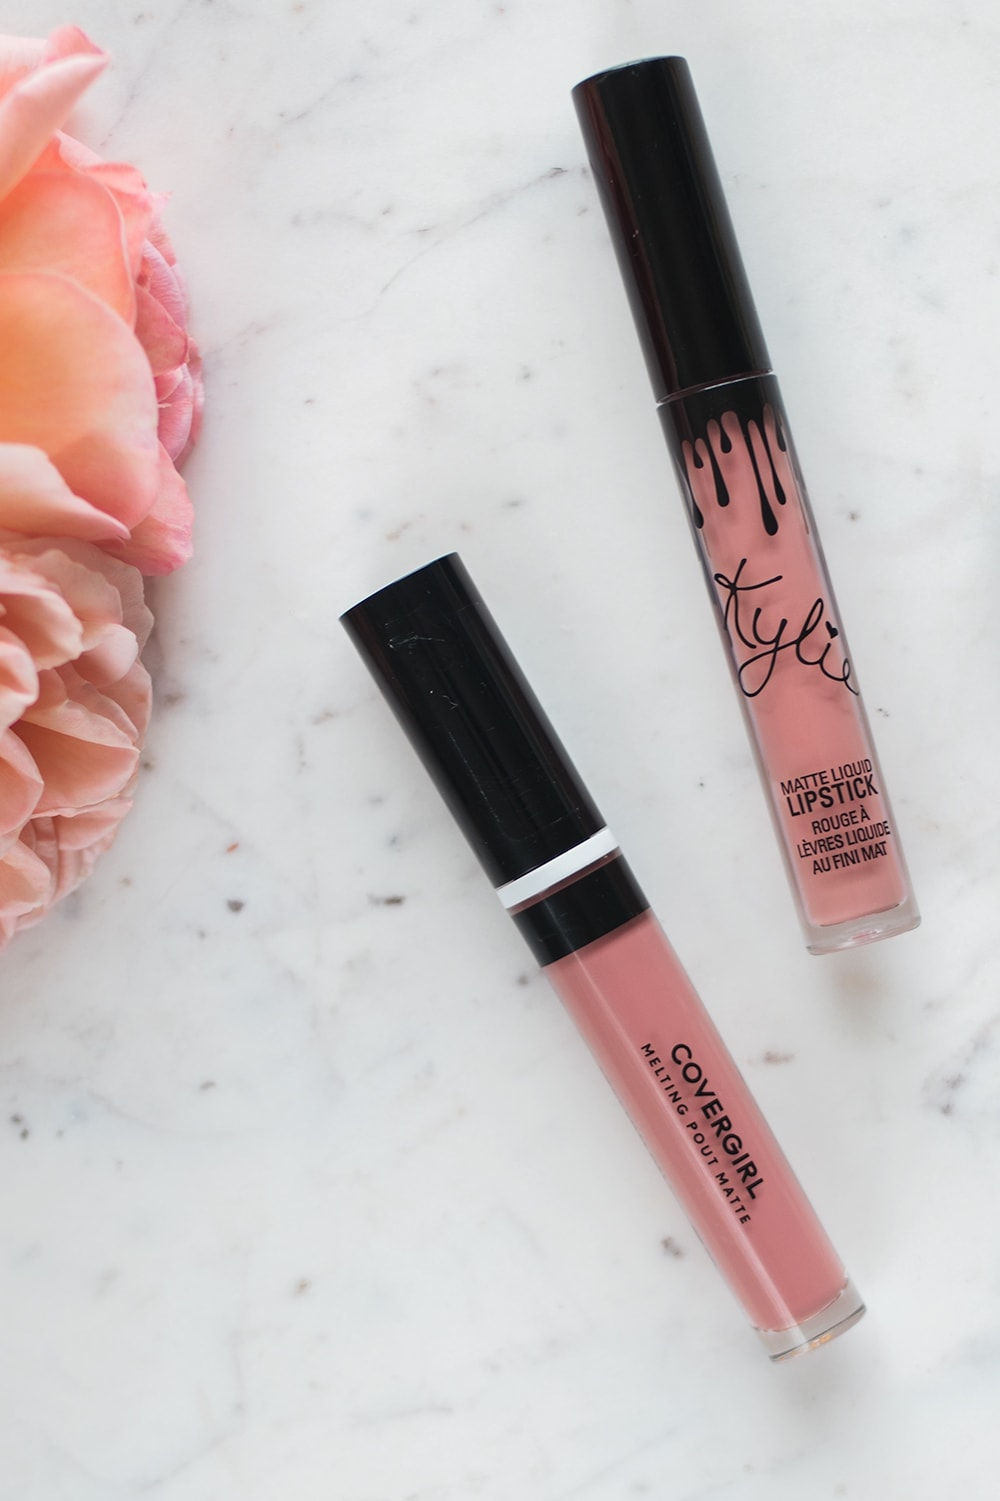 Popular Houston beauty blogger Meg O. on the Go shares a Kylie Cosmetics Koko K Dupe